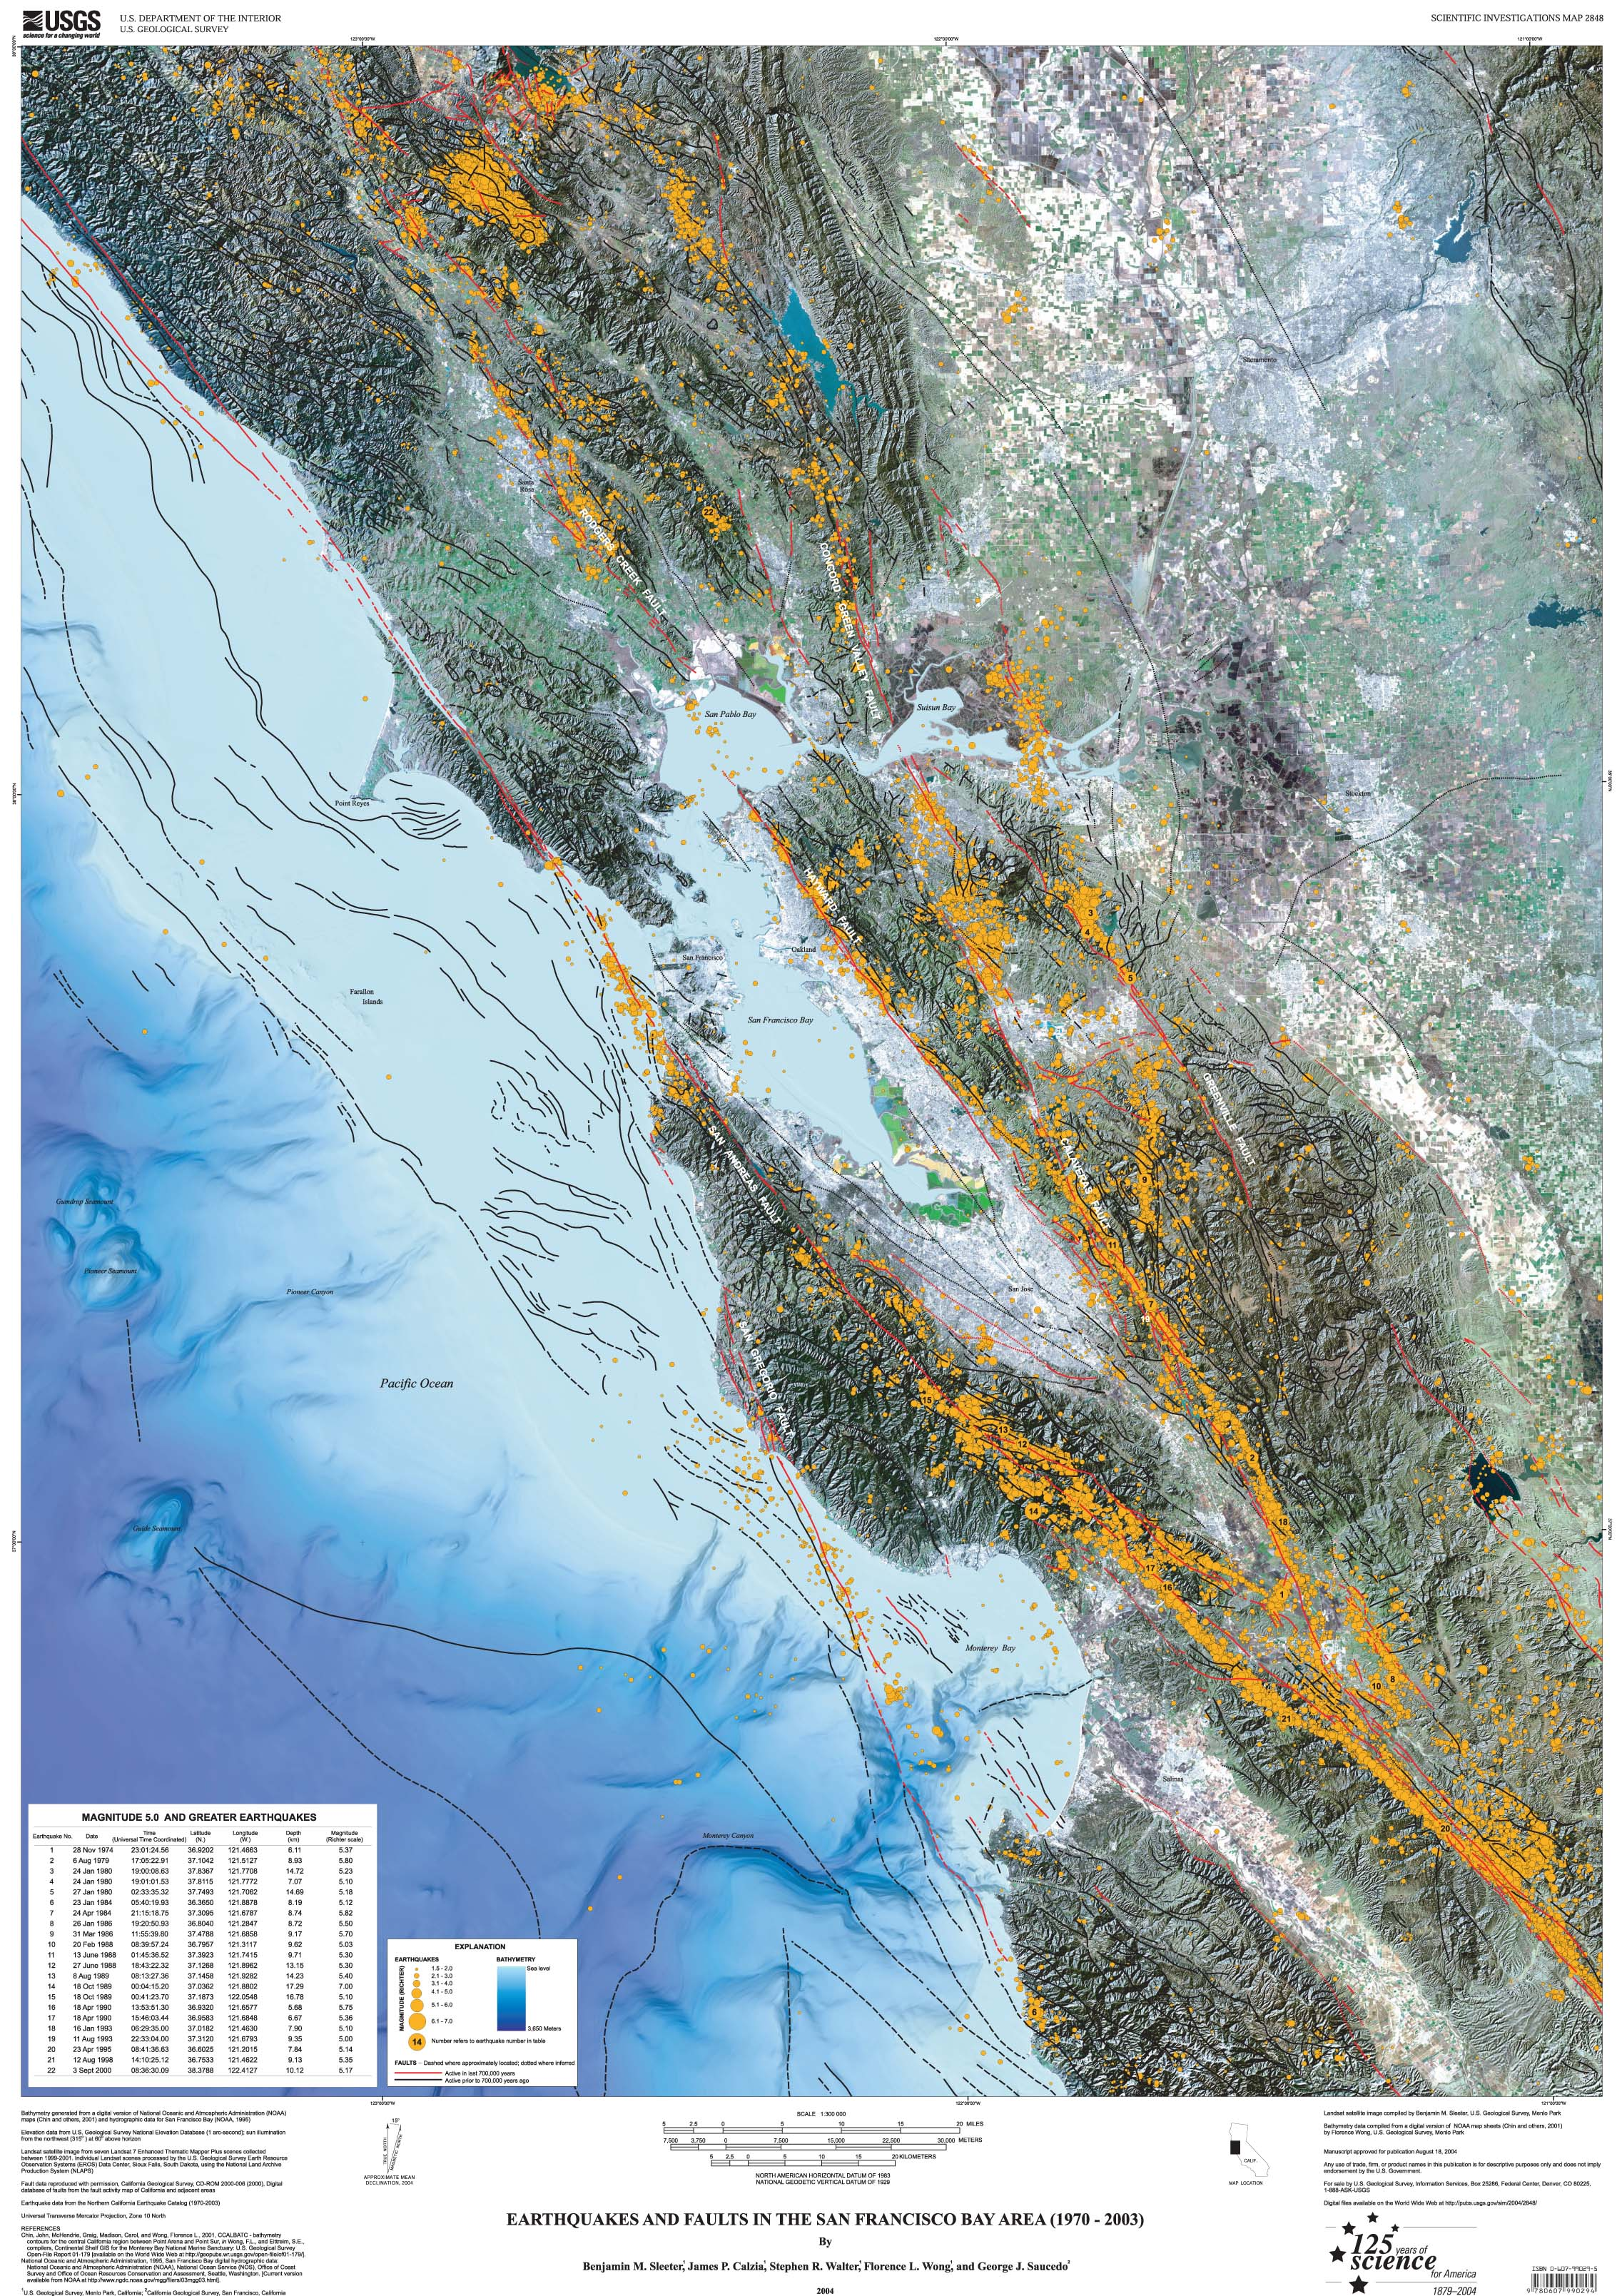 Seismic Hazards Maps for the San Francisco Bay Area  Earthquake